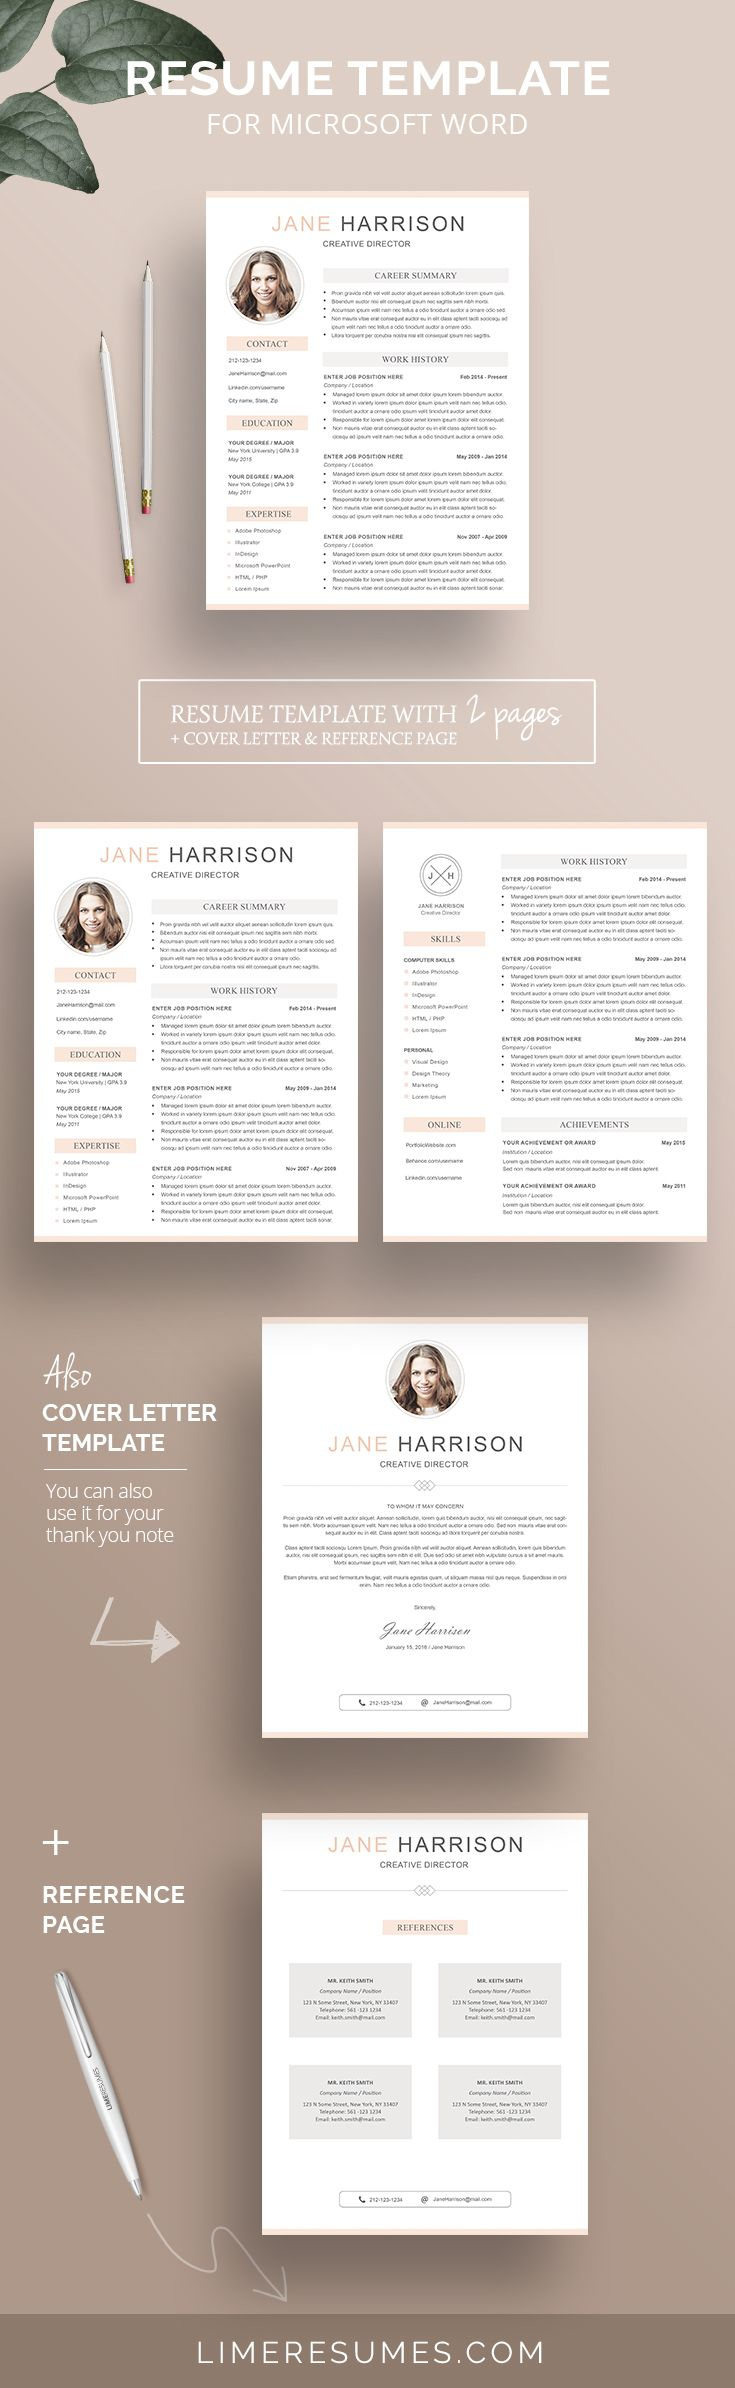 Word Cv Templates 2007%0A Modern resume template with photo  Easy to edit with Word  Comes with  matching cover